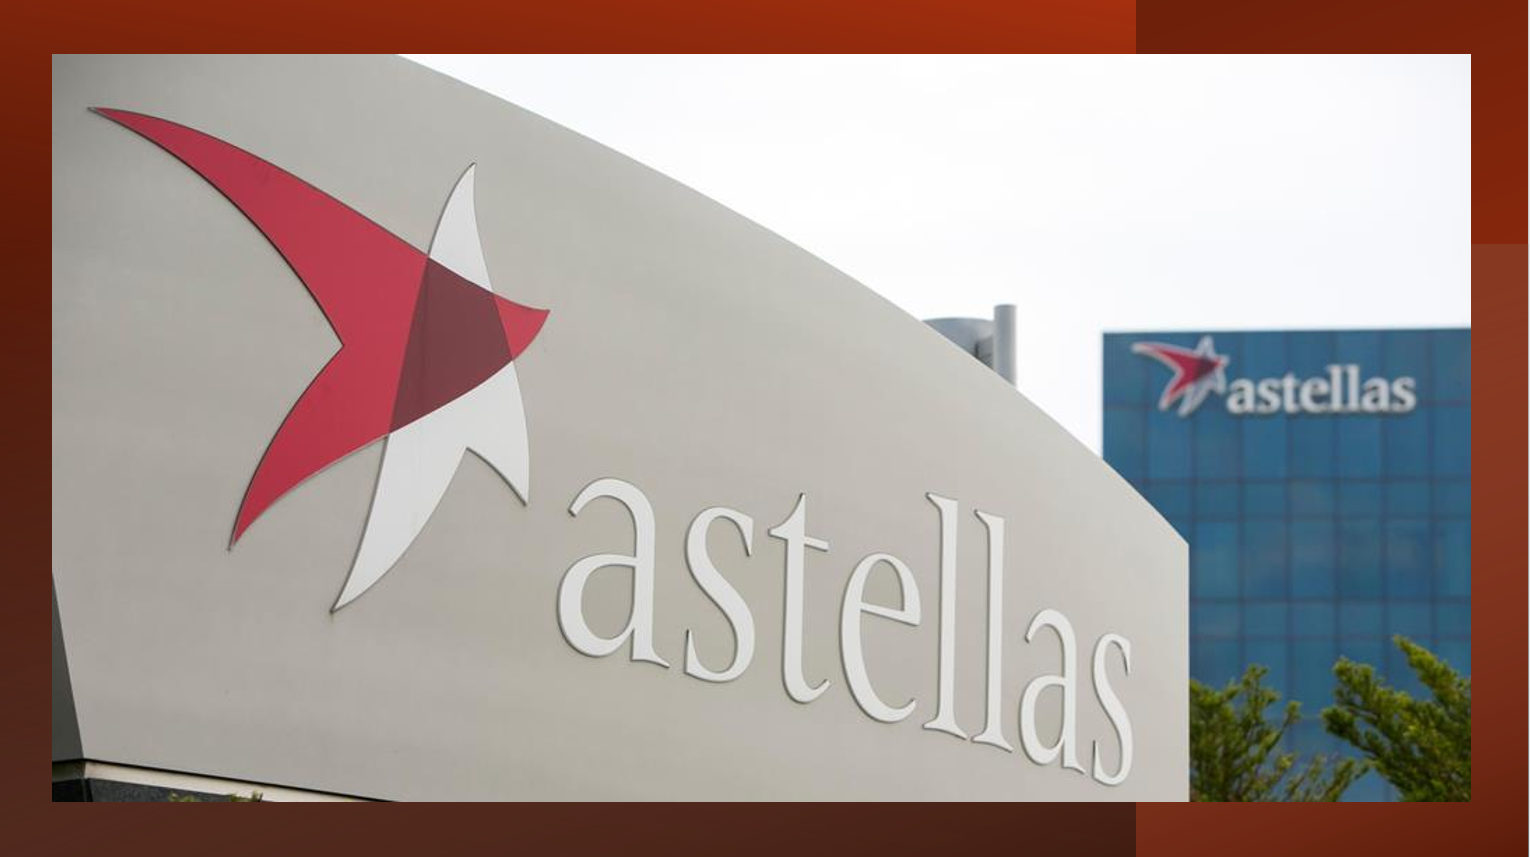 Pharma News - TGA approves Astellas' Xtandi for metastatic hormone-sensitive prostate cancer